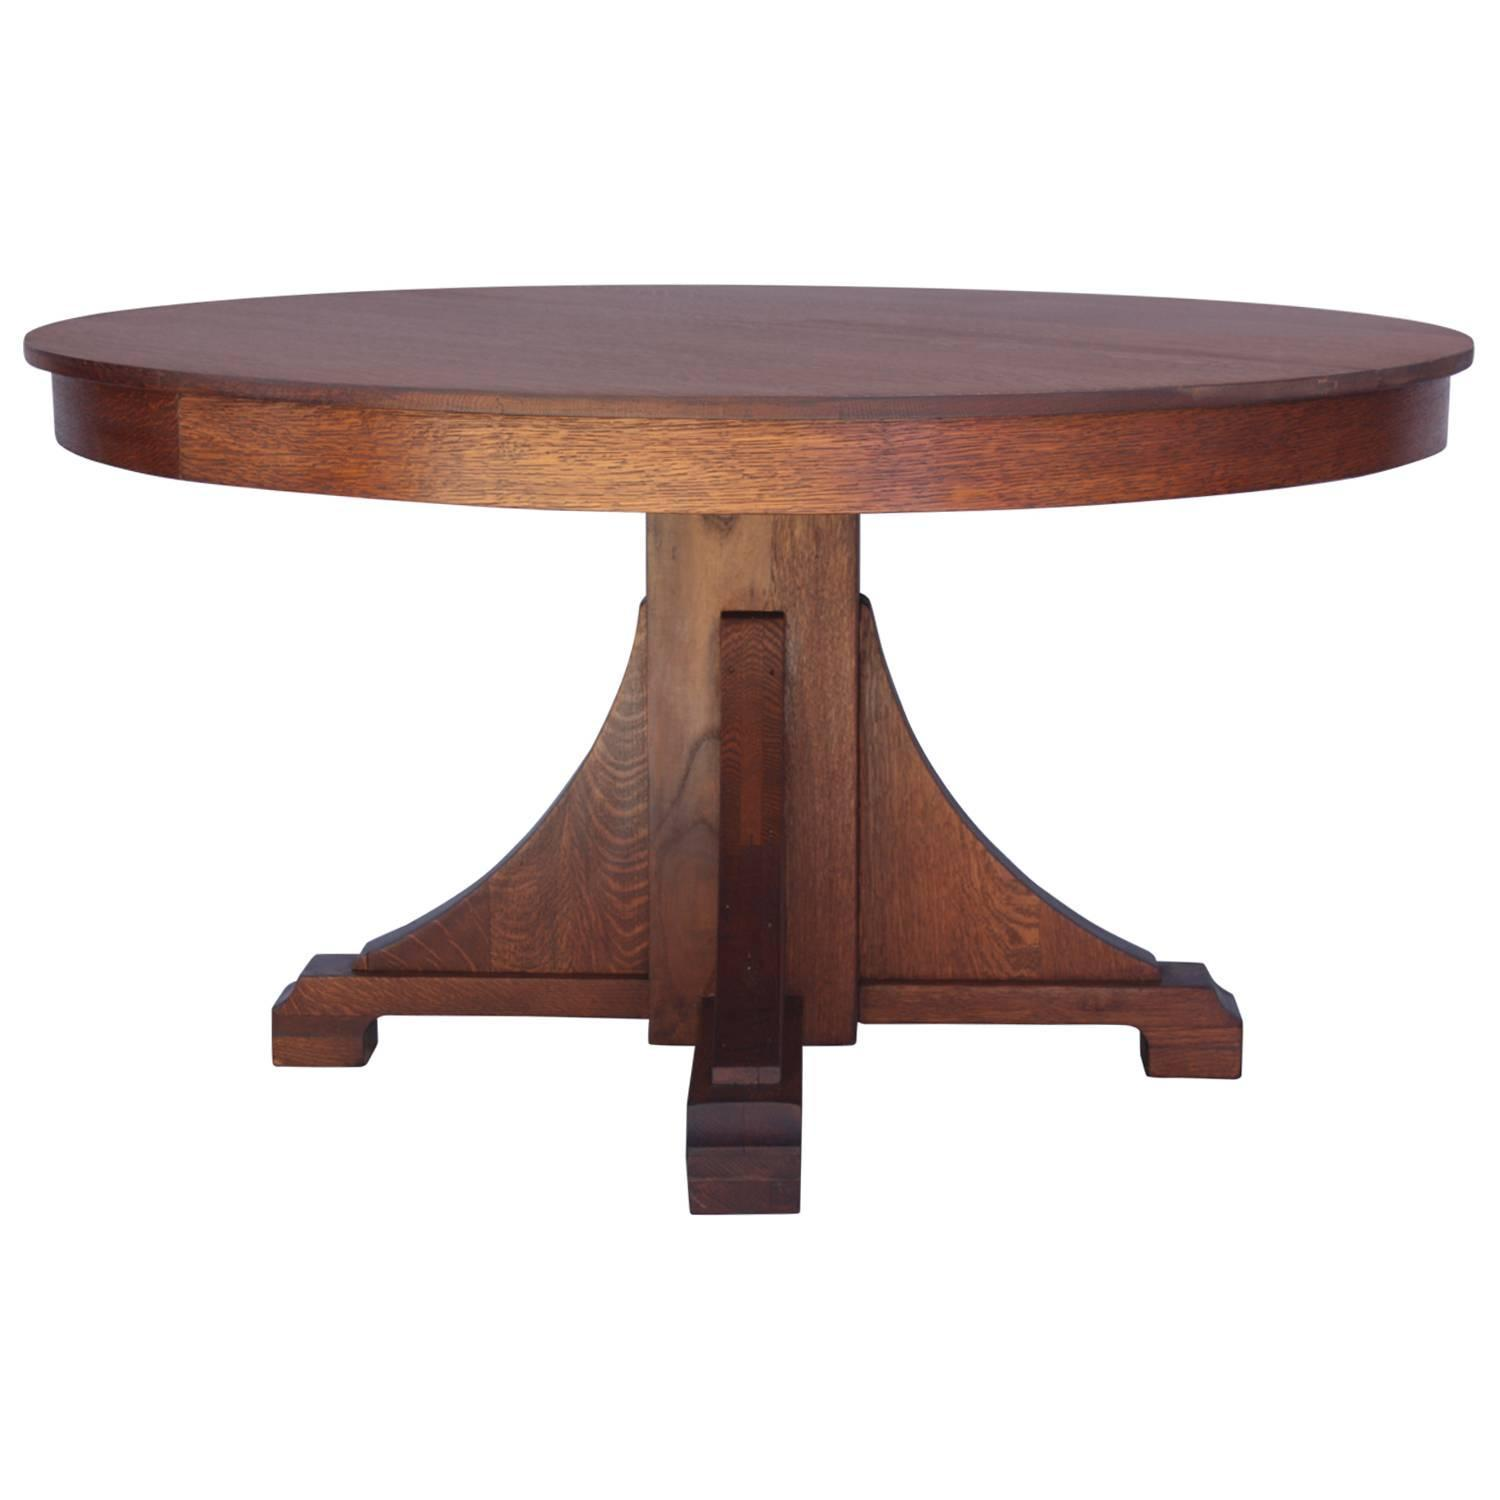 1910 arts and crafts round oak dining table at 1stdibs - Round oak dining tables ...